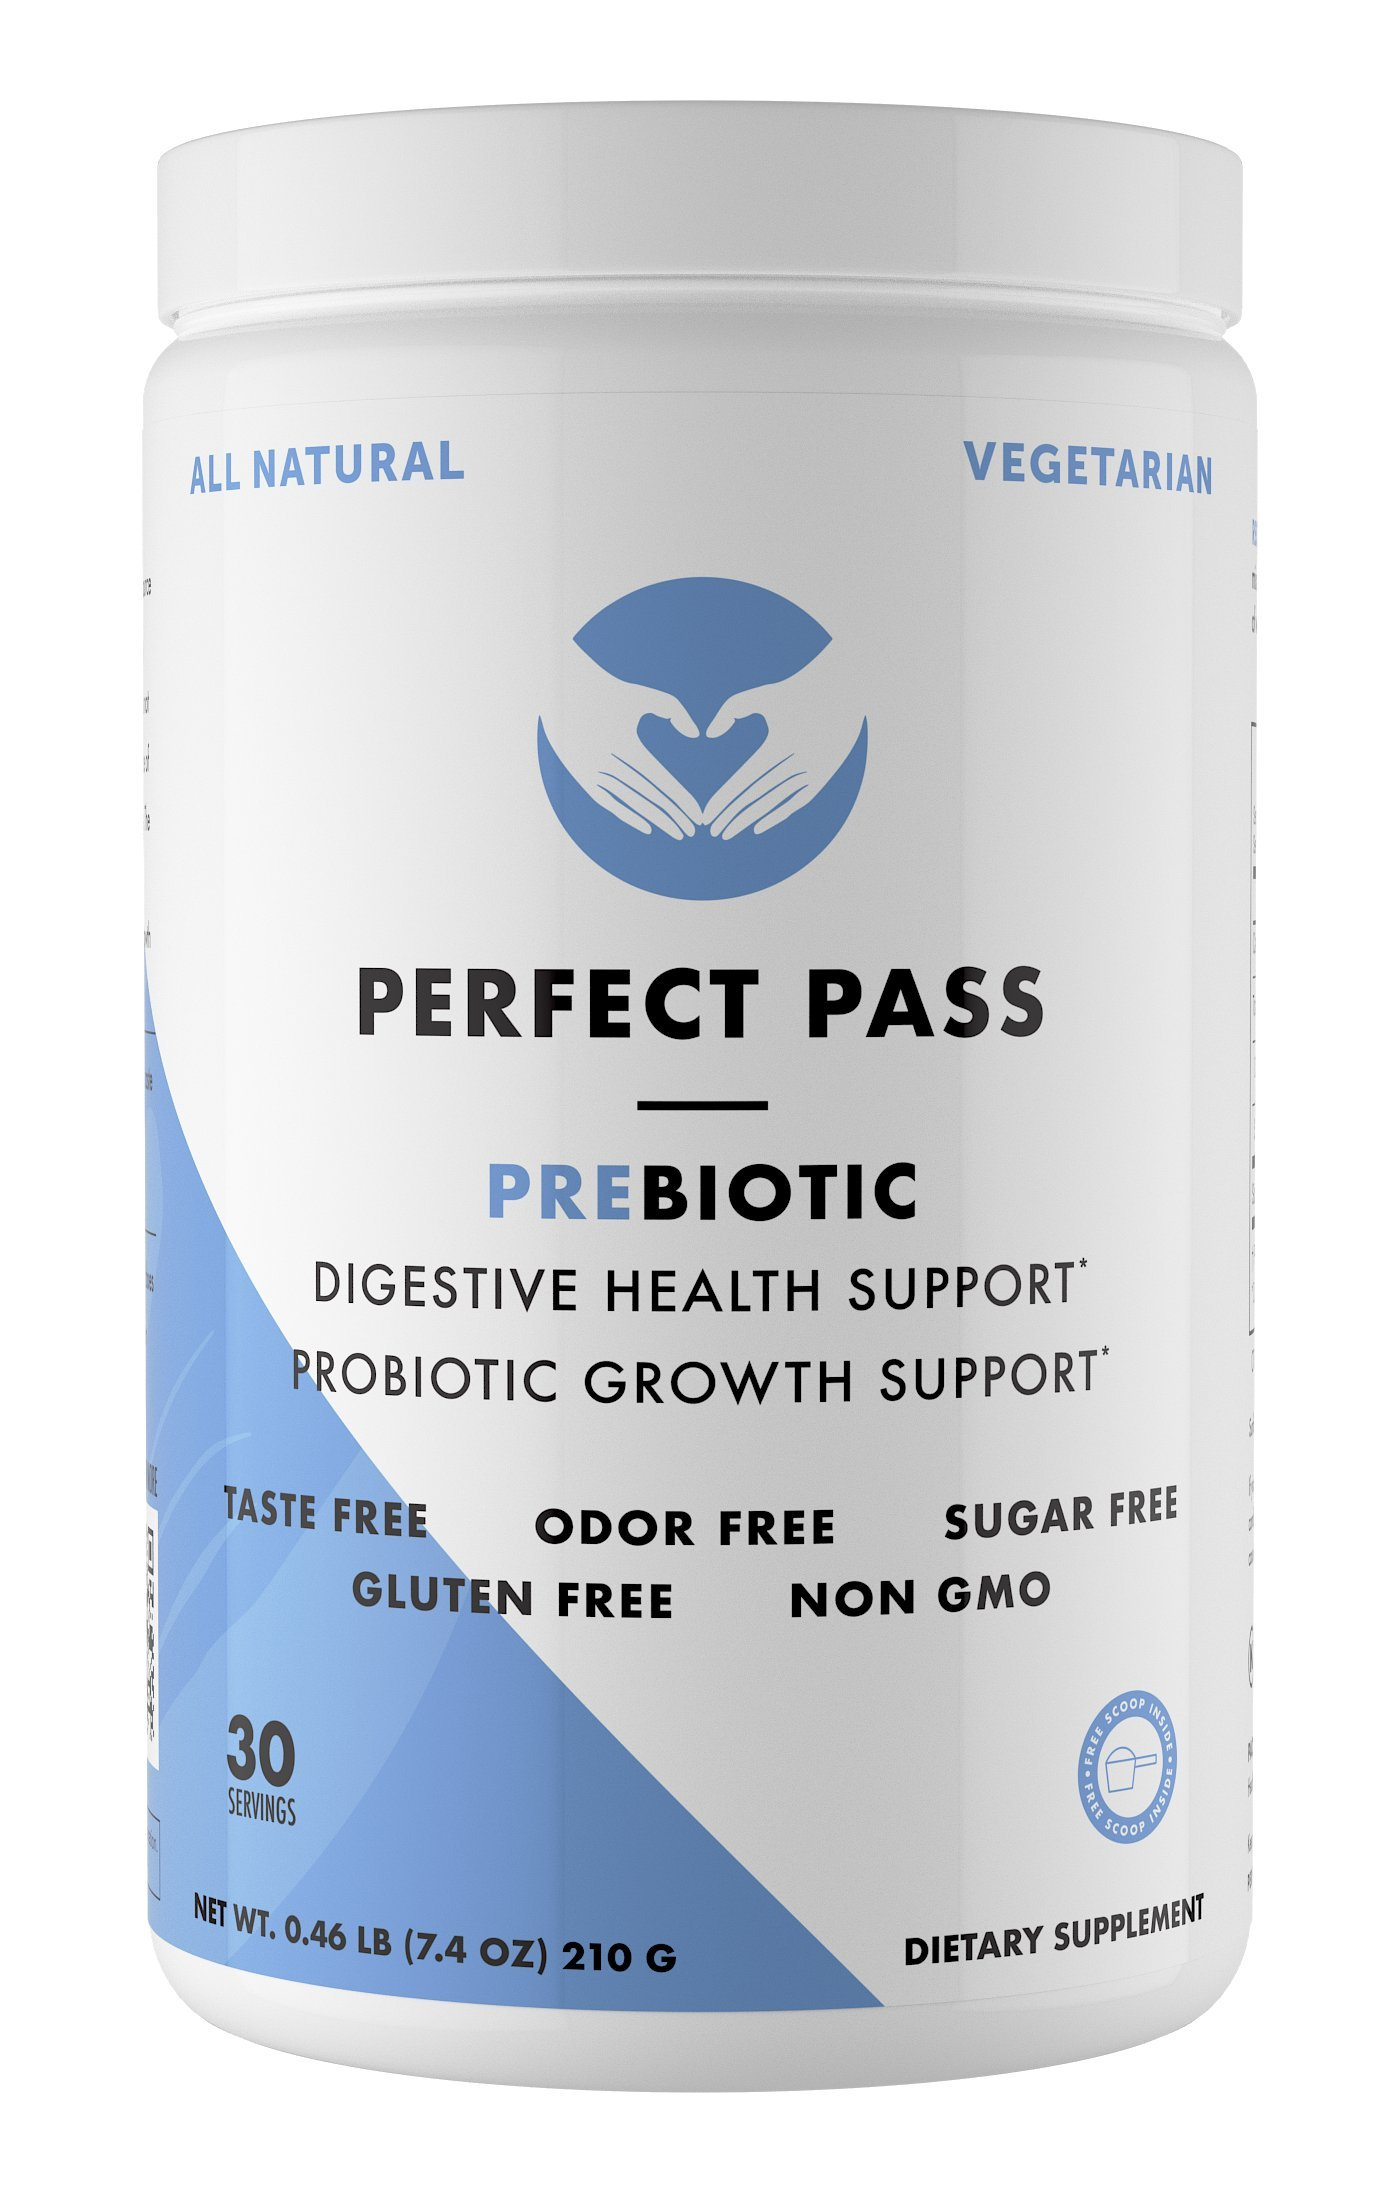 Perfect Pass Prebiotic PHGG Partially Hydrolyzed Guar Gum 210g Powder - 100% Natural Gluten Free Non GMO - Certified Kosher Vegetarian Sugar Free by PERFECT PASS